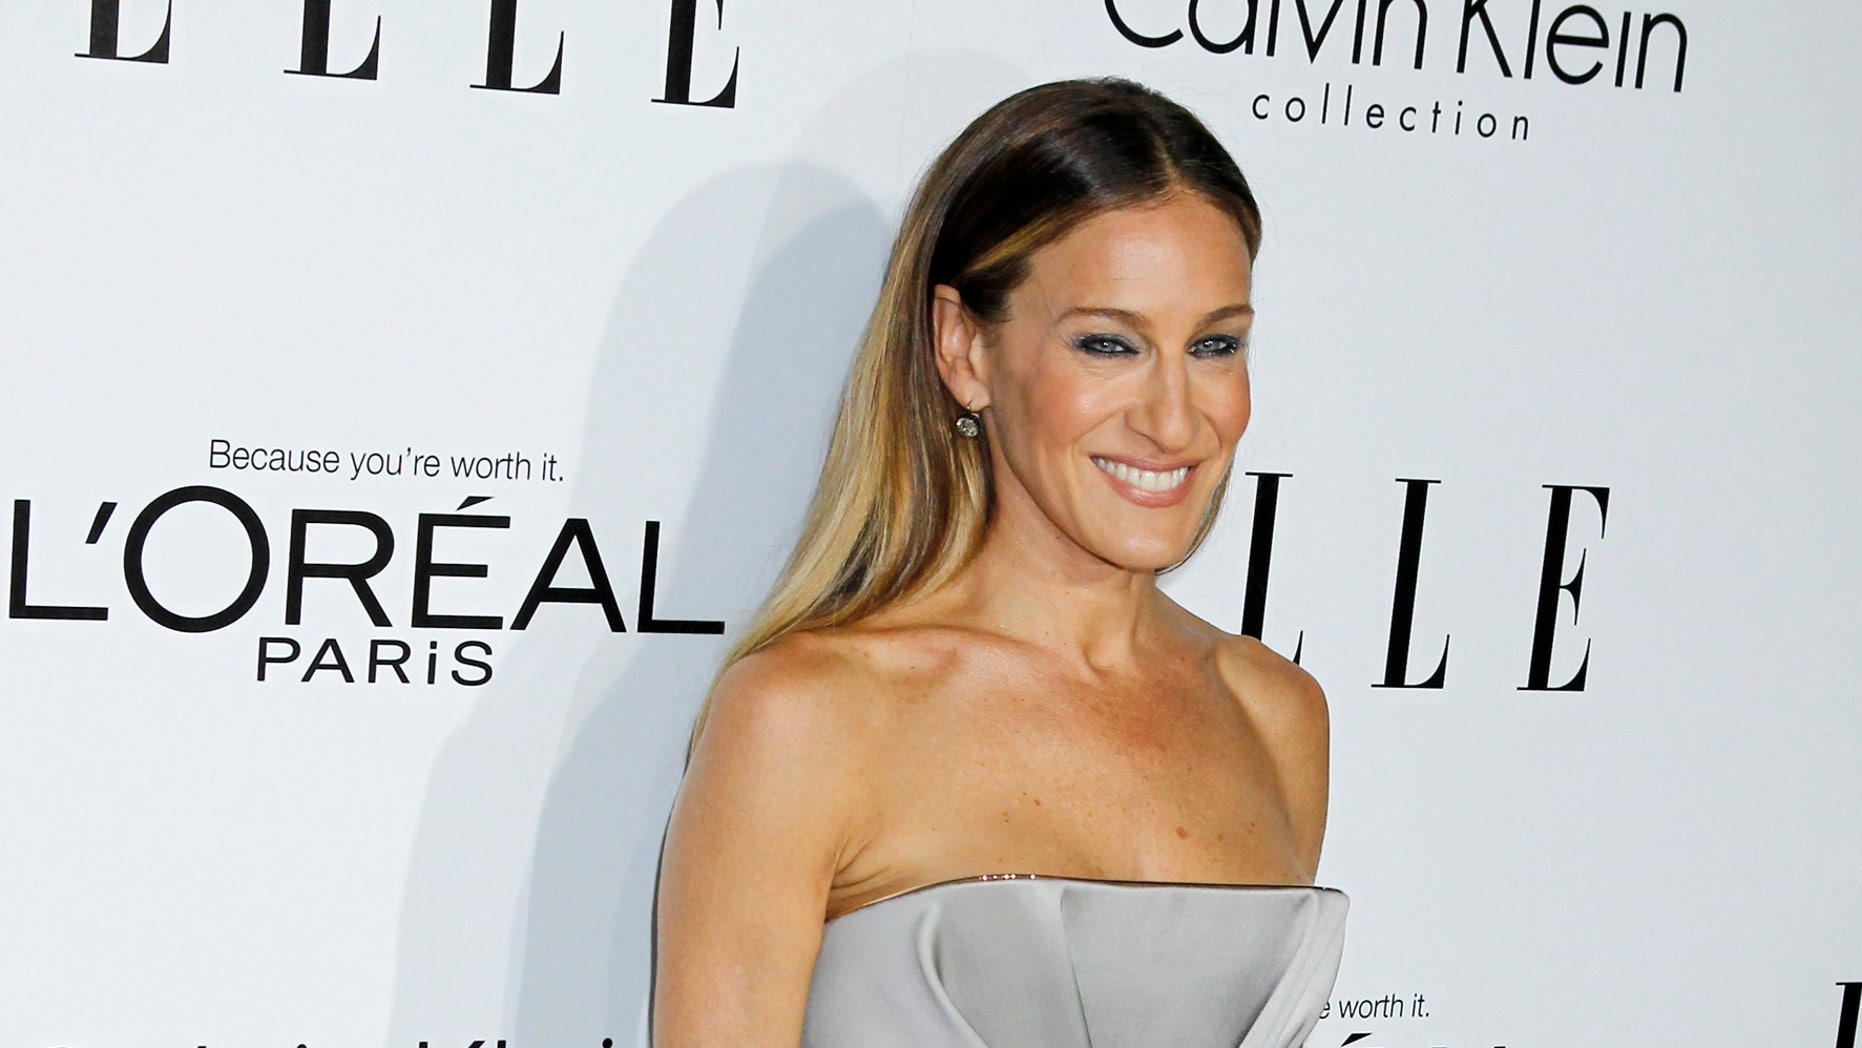 Honoree Sarah Jessica Parker poses as she arrives at the 19th Annual ELLE Women in Hollywood dinner in Beverly Hills, Callifornia October 15, 2012.